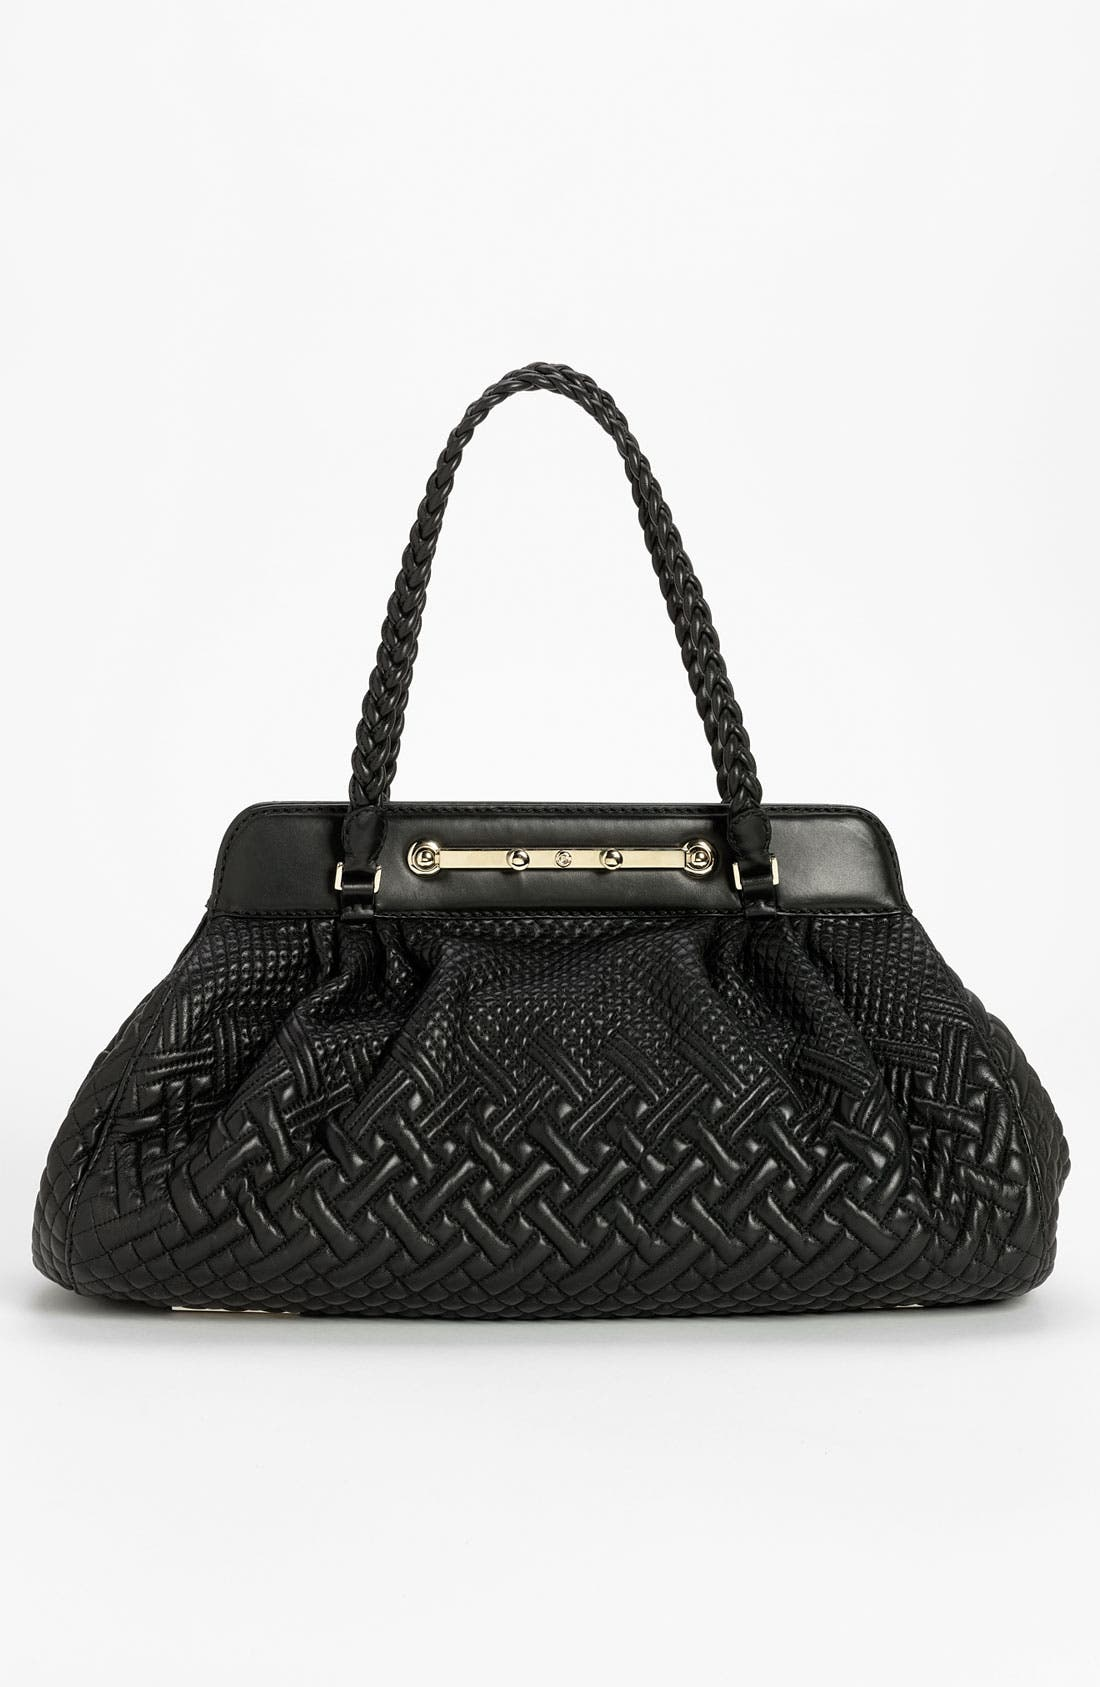 Alternate Image 1 Selected - Valentino 'Demetra' Leather Shoulder Bag